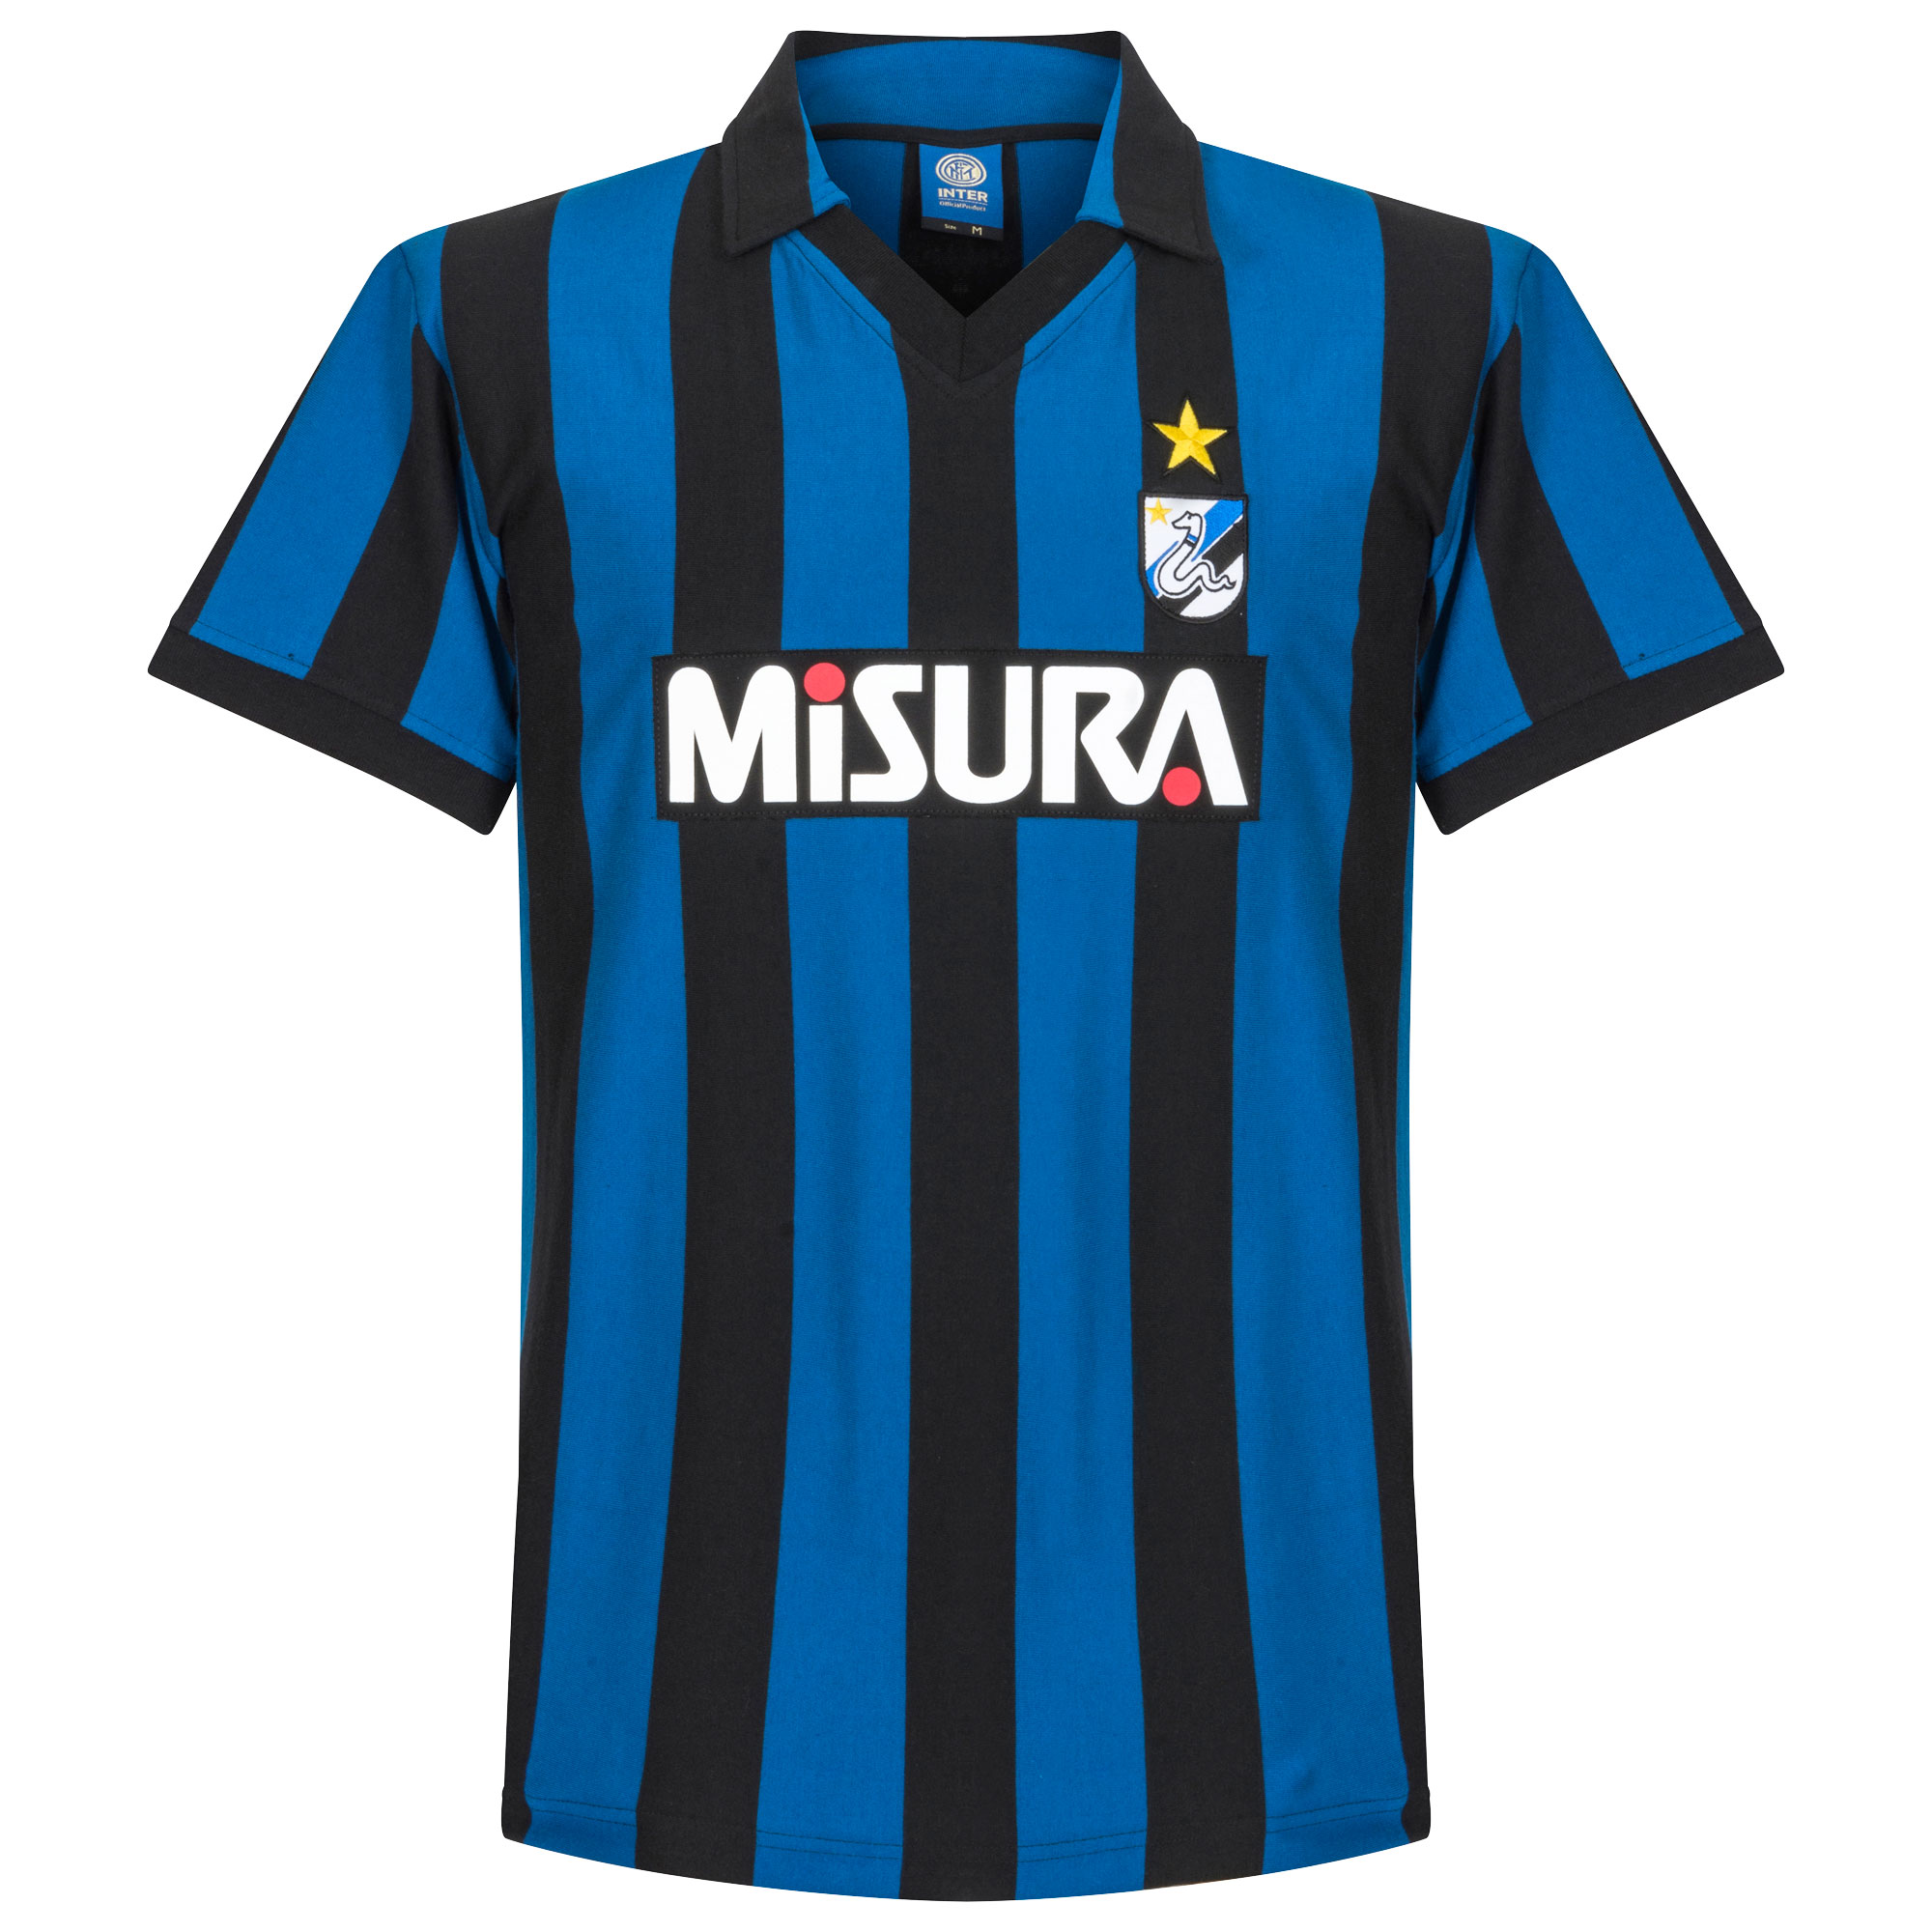 86-87 Inter Milan Home Retro Shirt